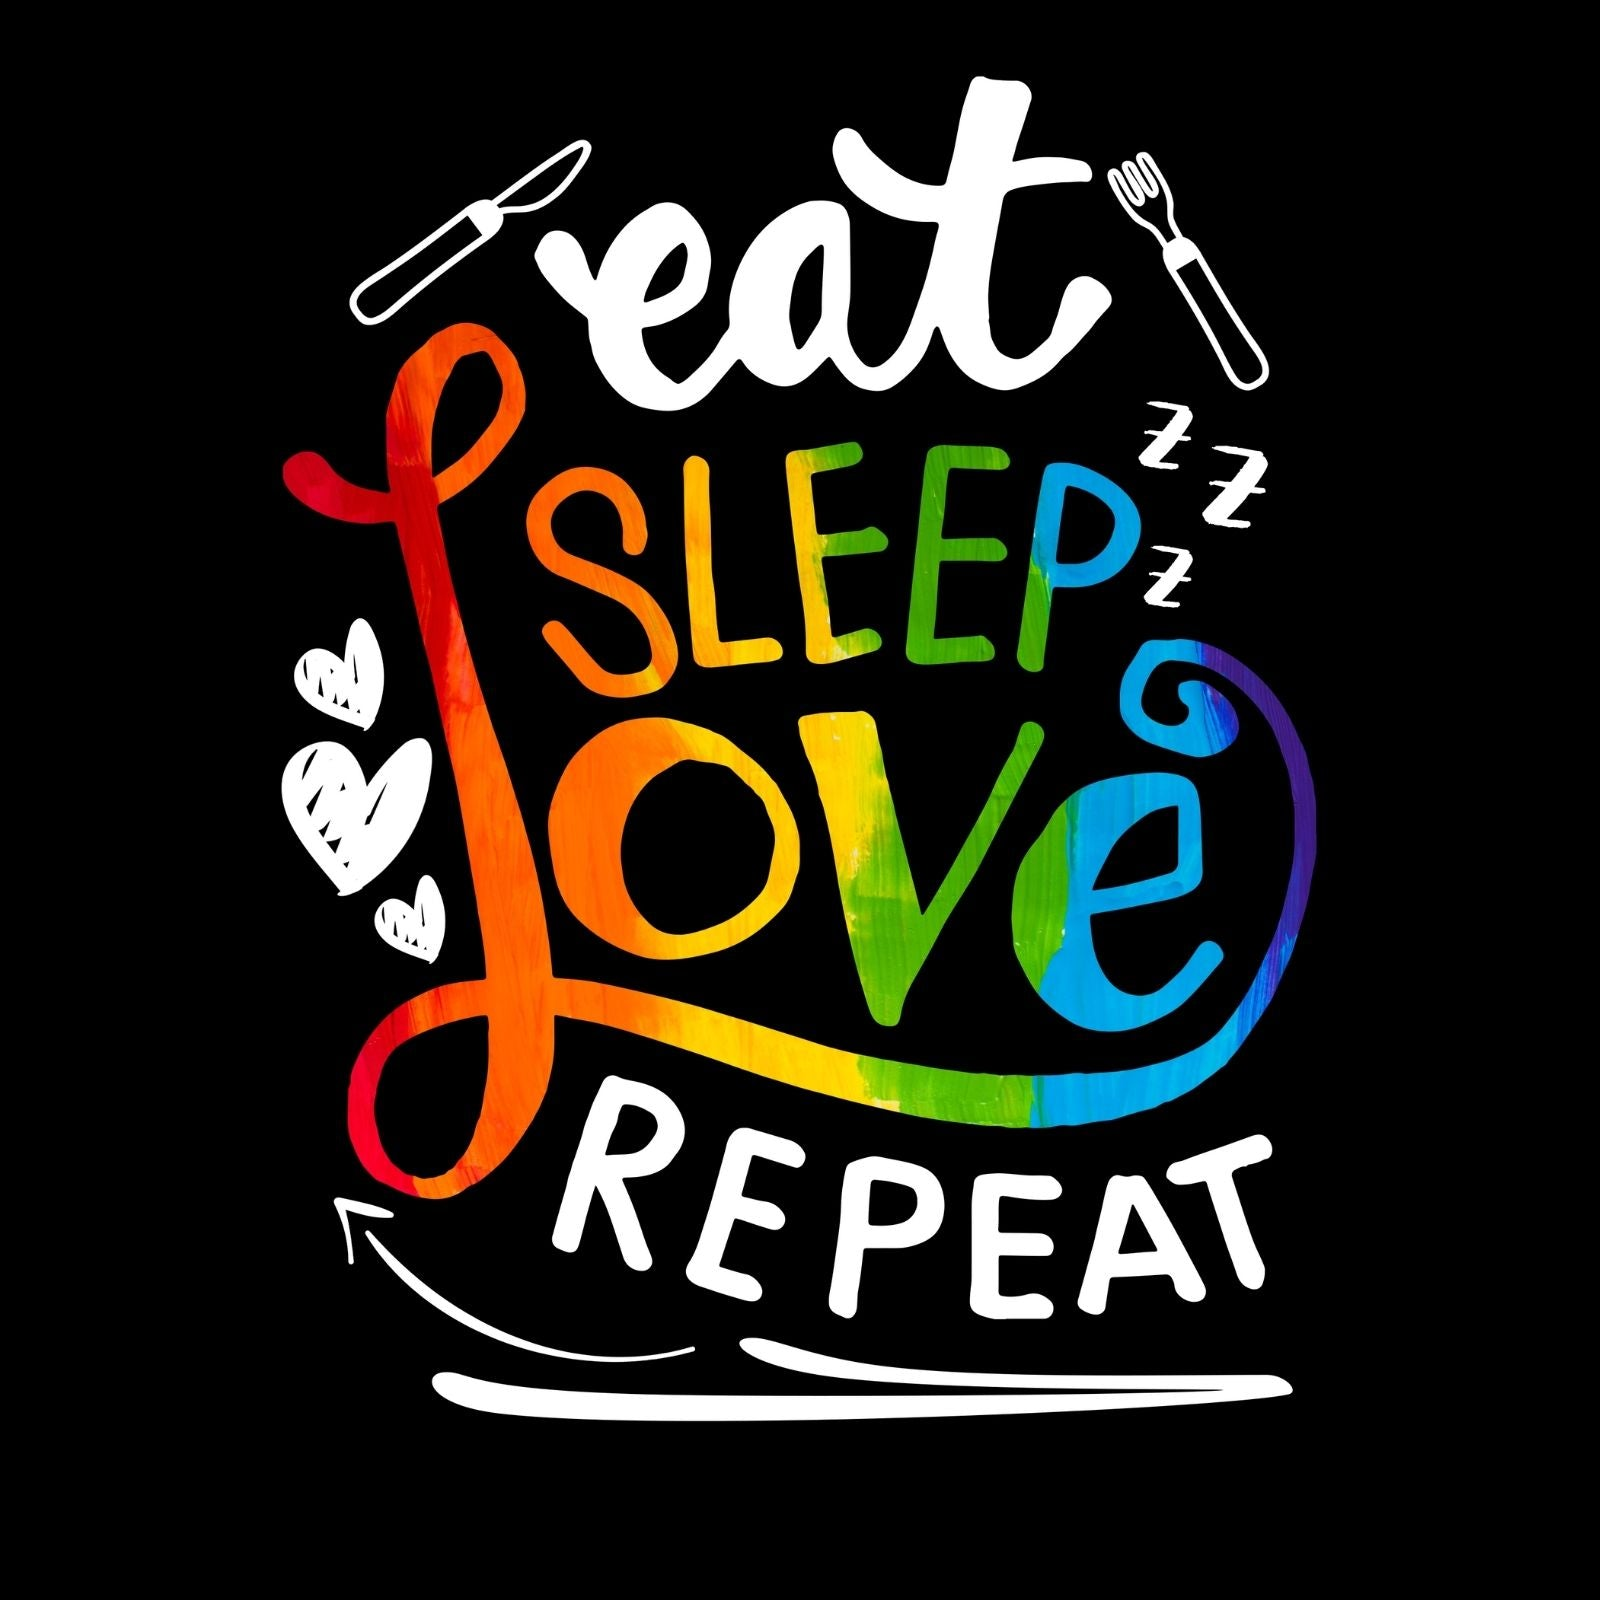 Eat Sleep Love Repeat - Bastard Graphics